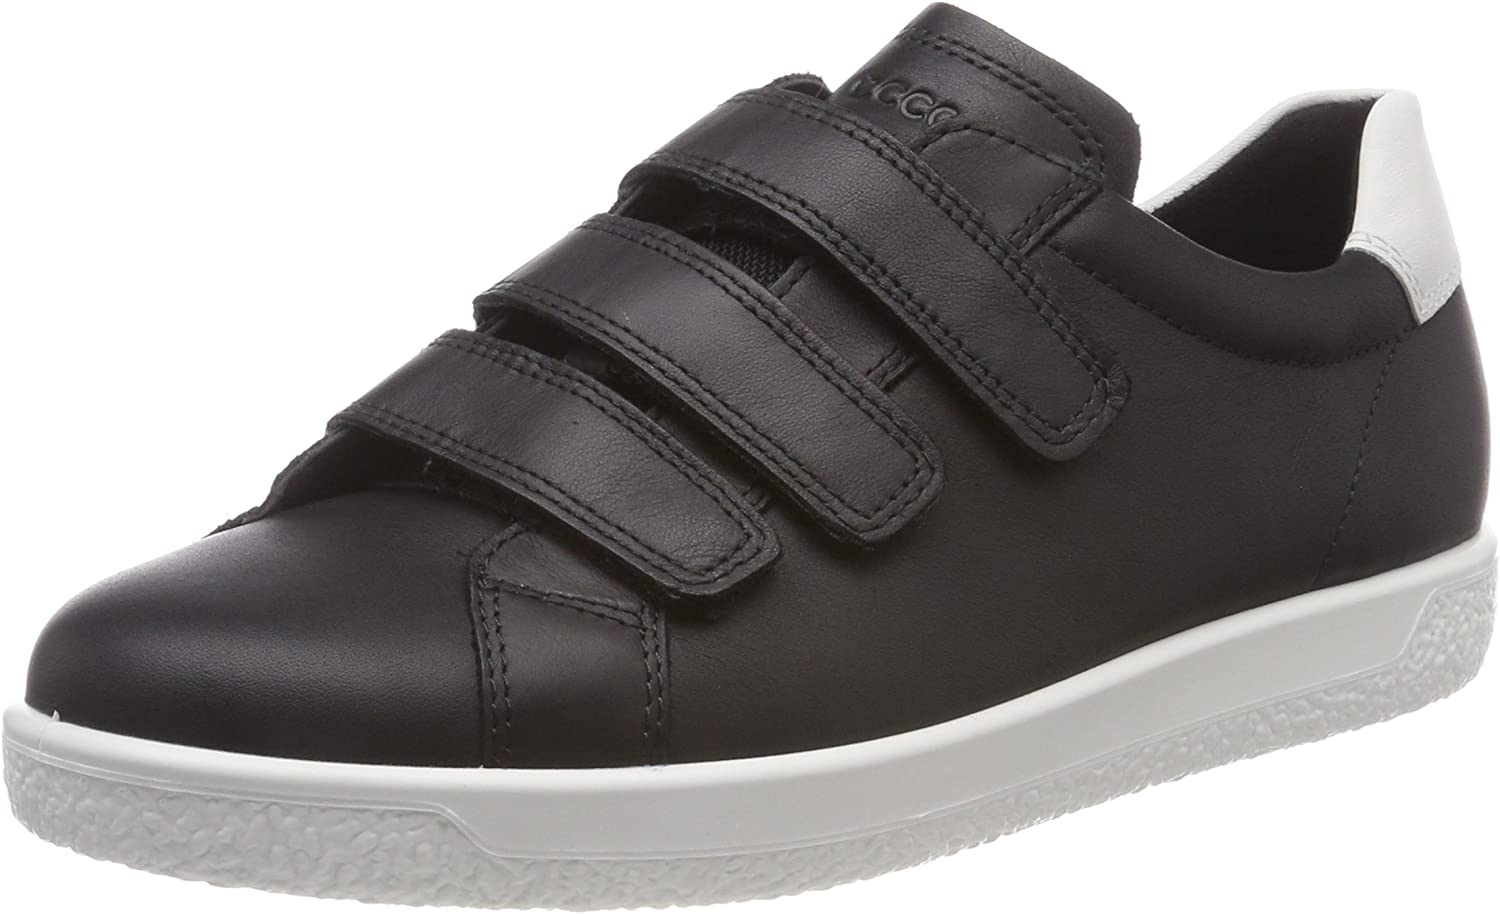 ECCO shoes Women's Soft 1 Three Strap Fashion Sneakers